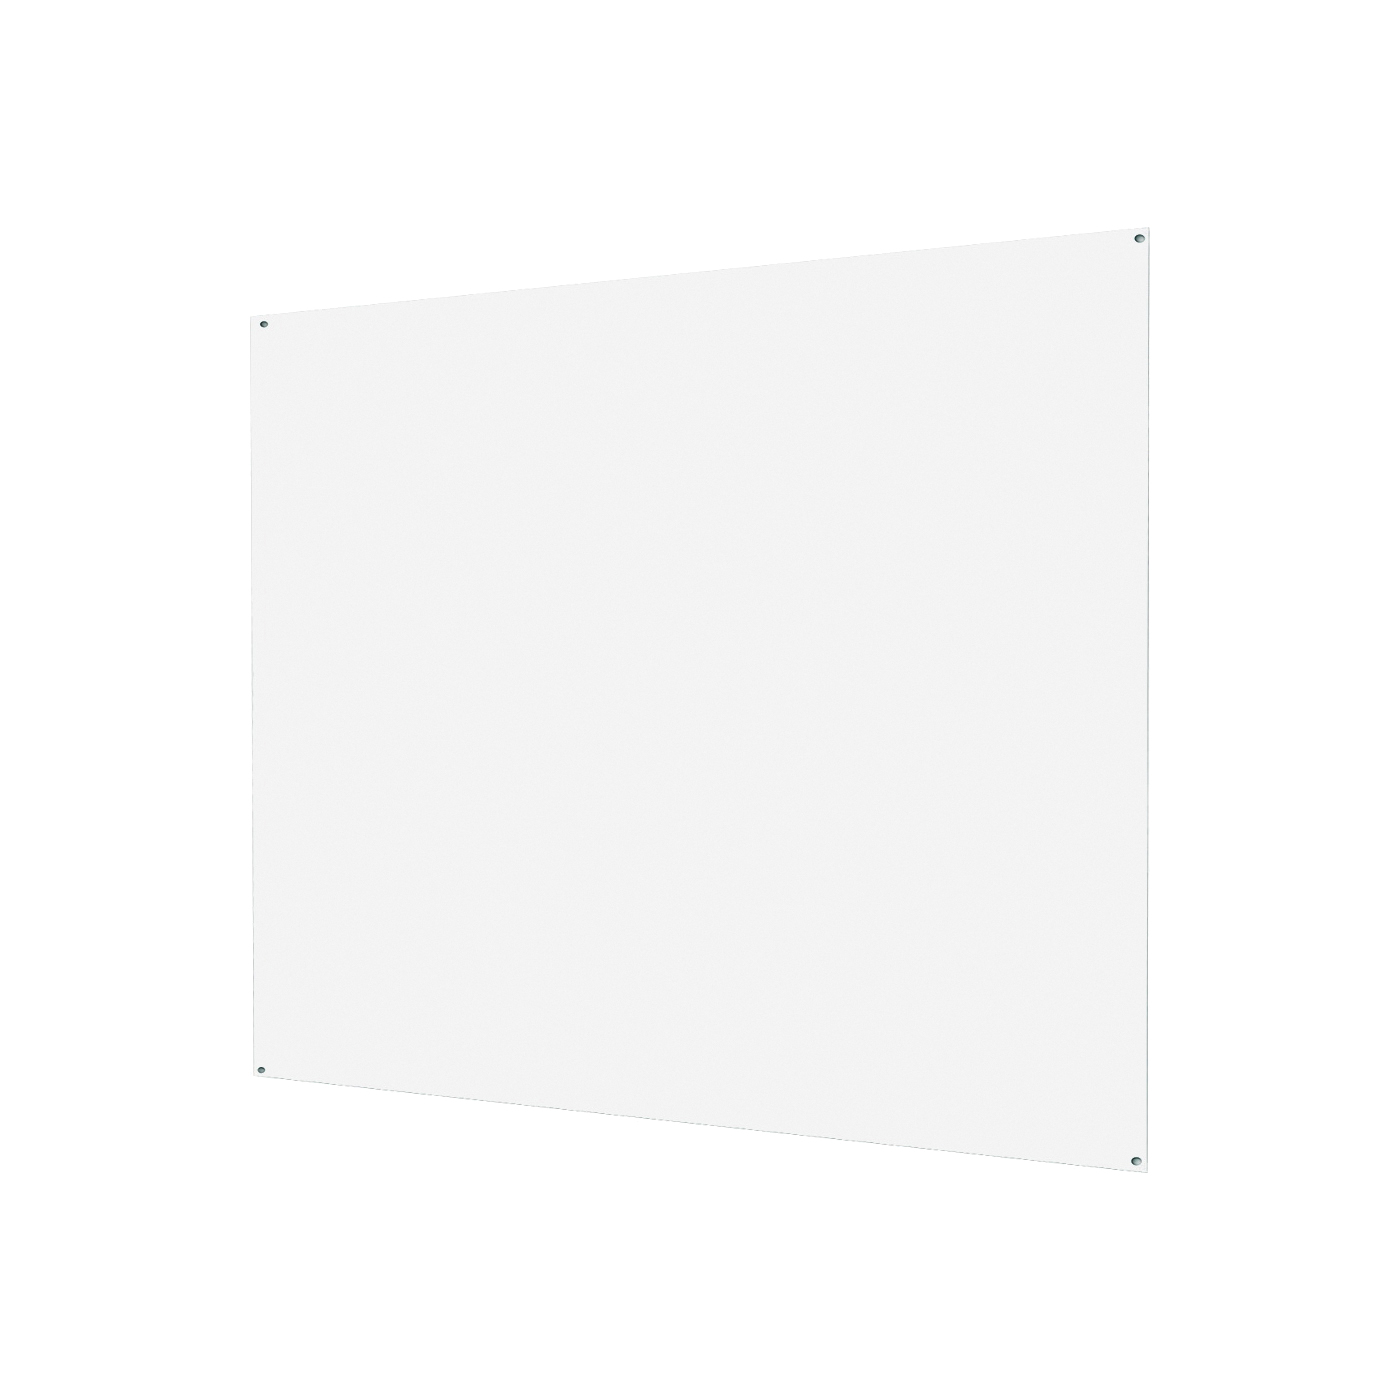 Picture of Air King SP2430W Range Hood Backsplash, Cold Rolled Steel, White, Powder-Coated